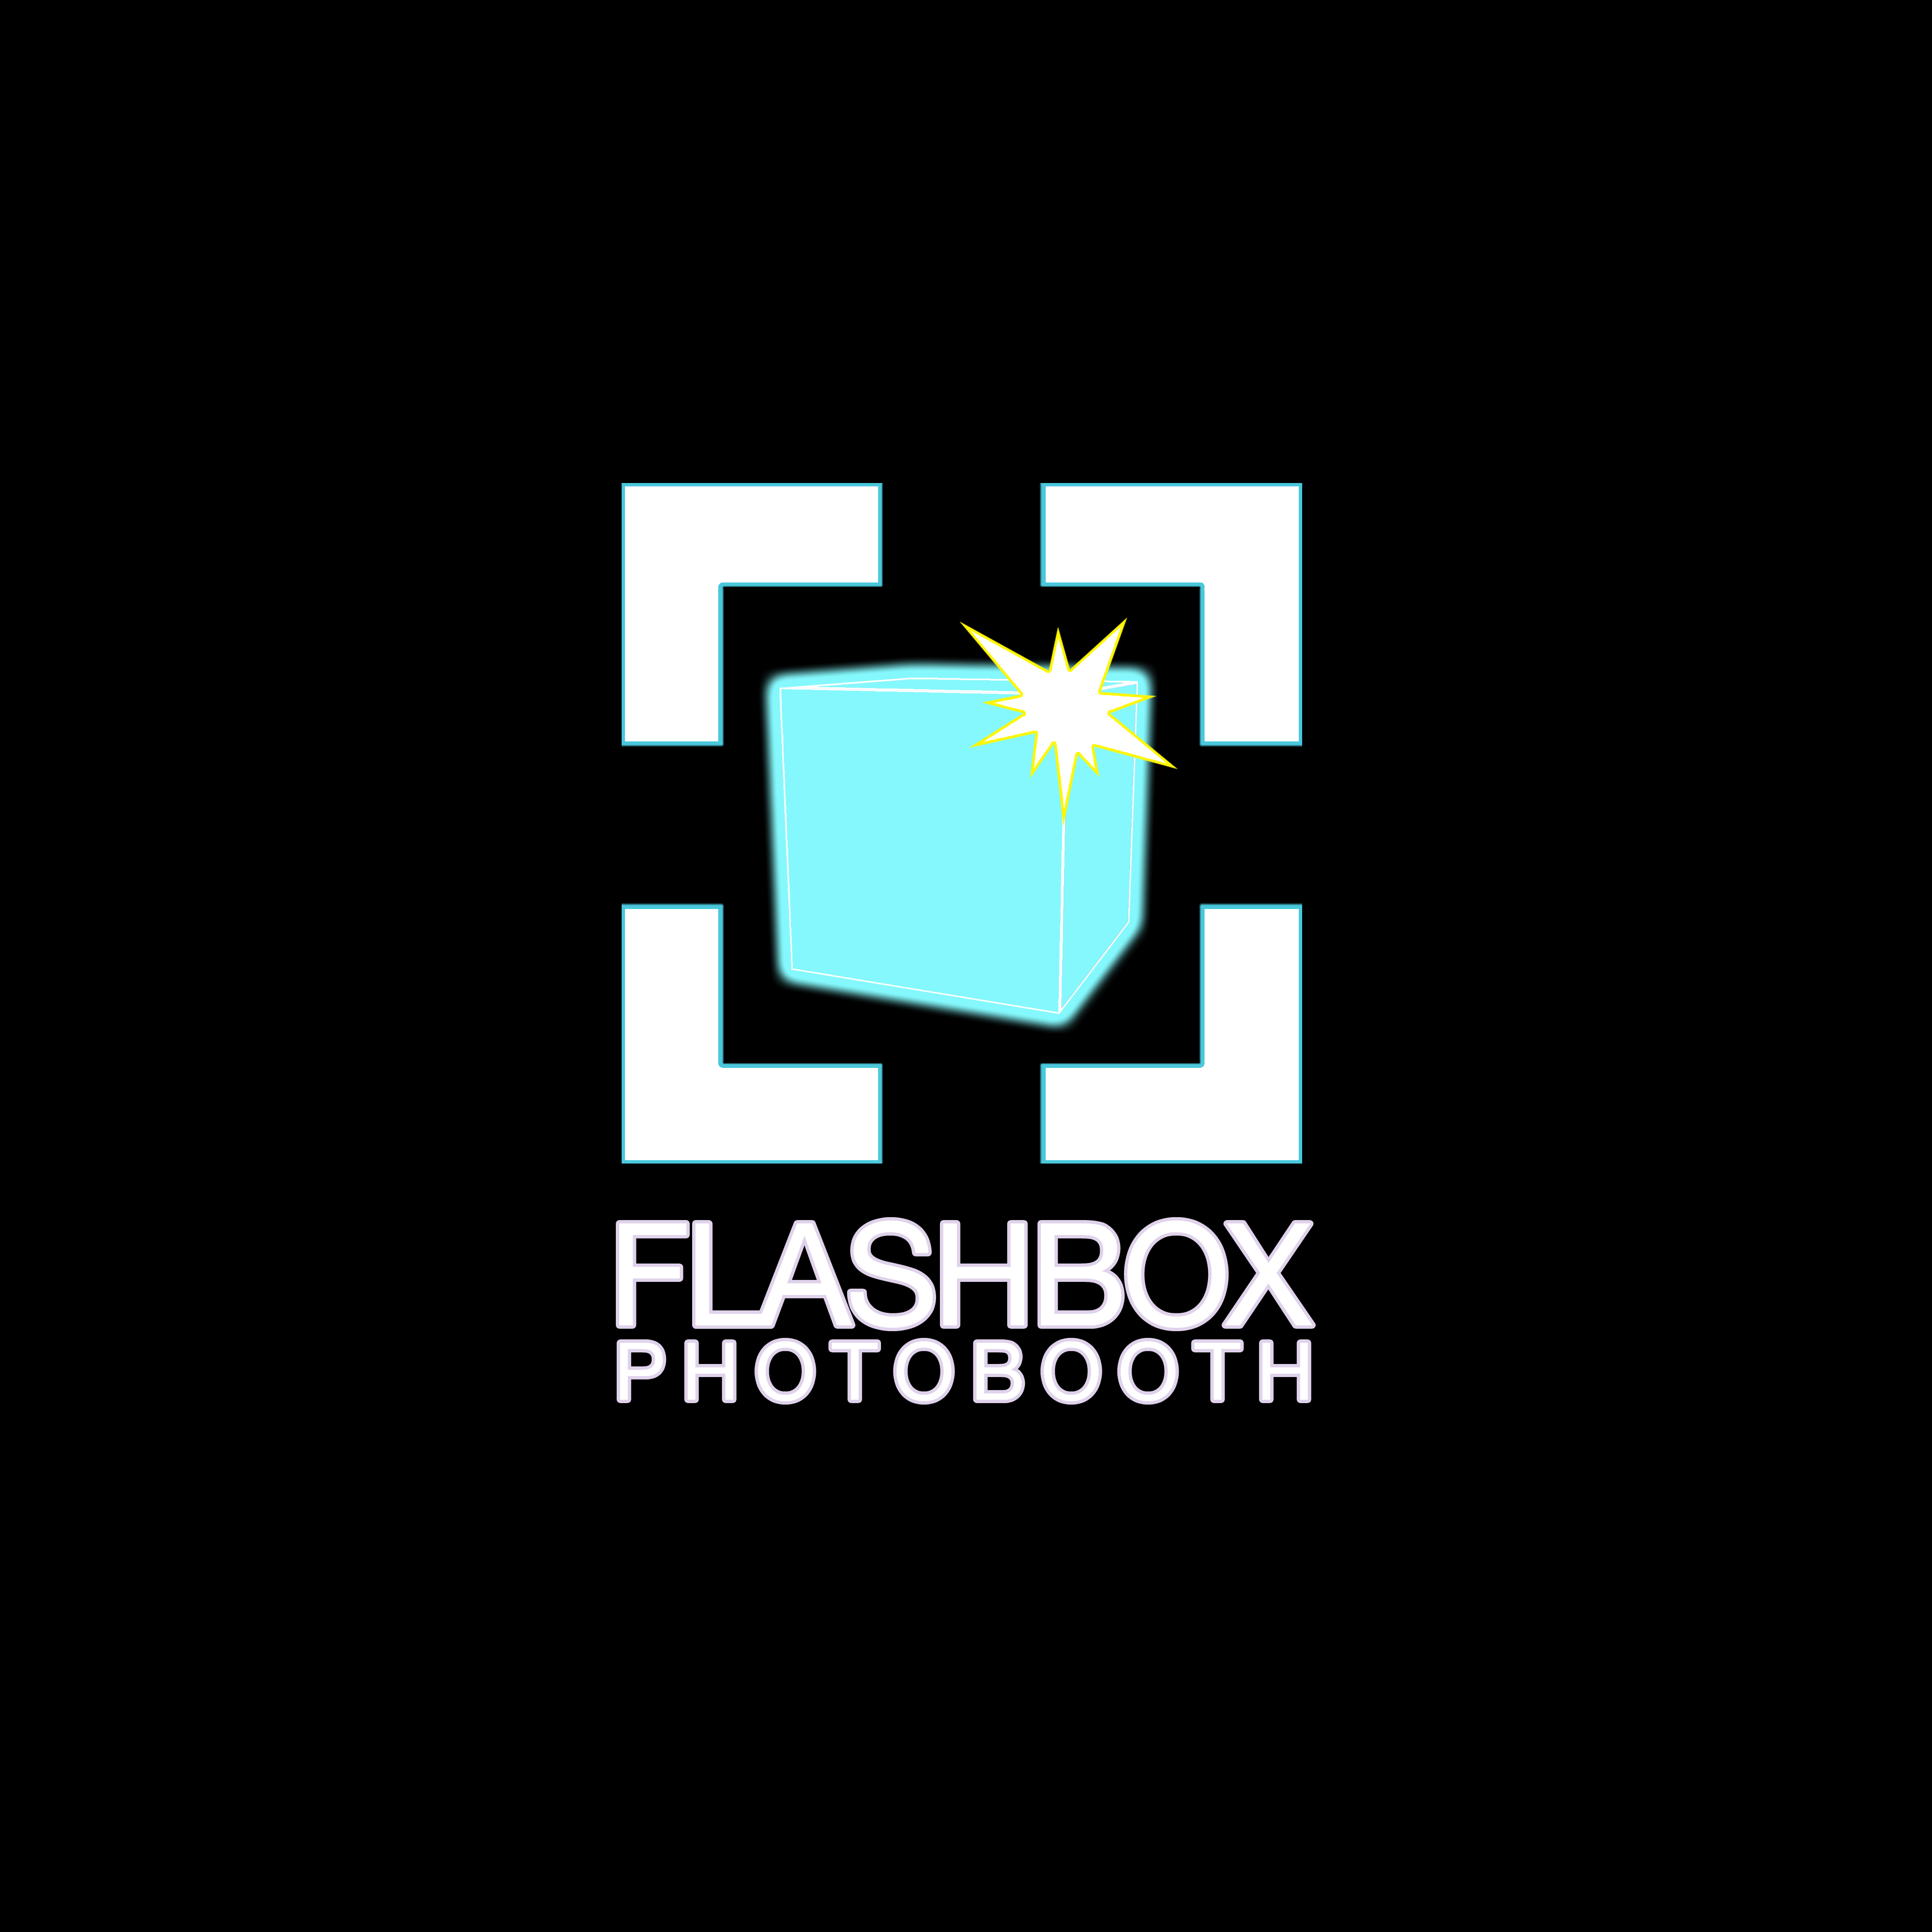 Logo Design by Utkarsh Bhandari - Entry No. 114 in the Logo Design Contest New Logo Design for FlashBox Photobooths.